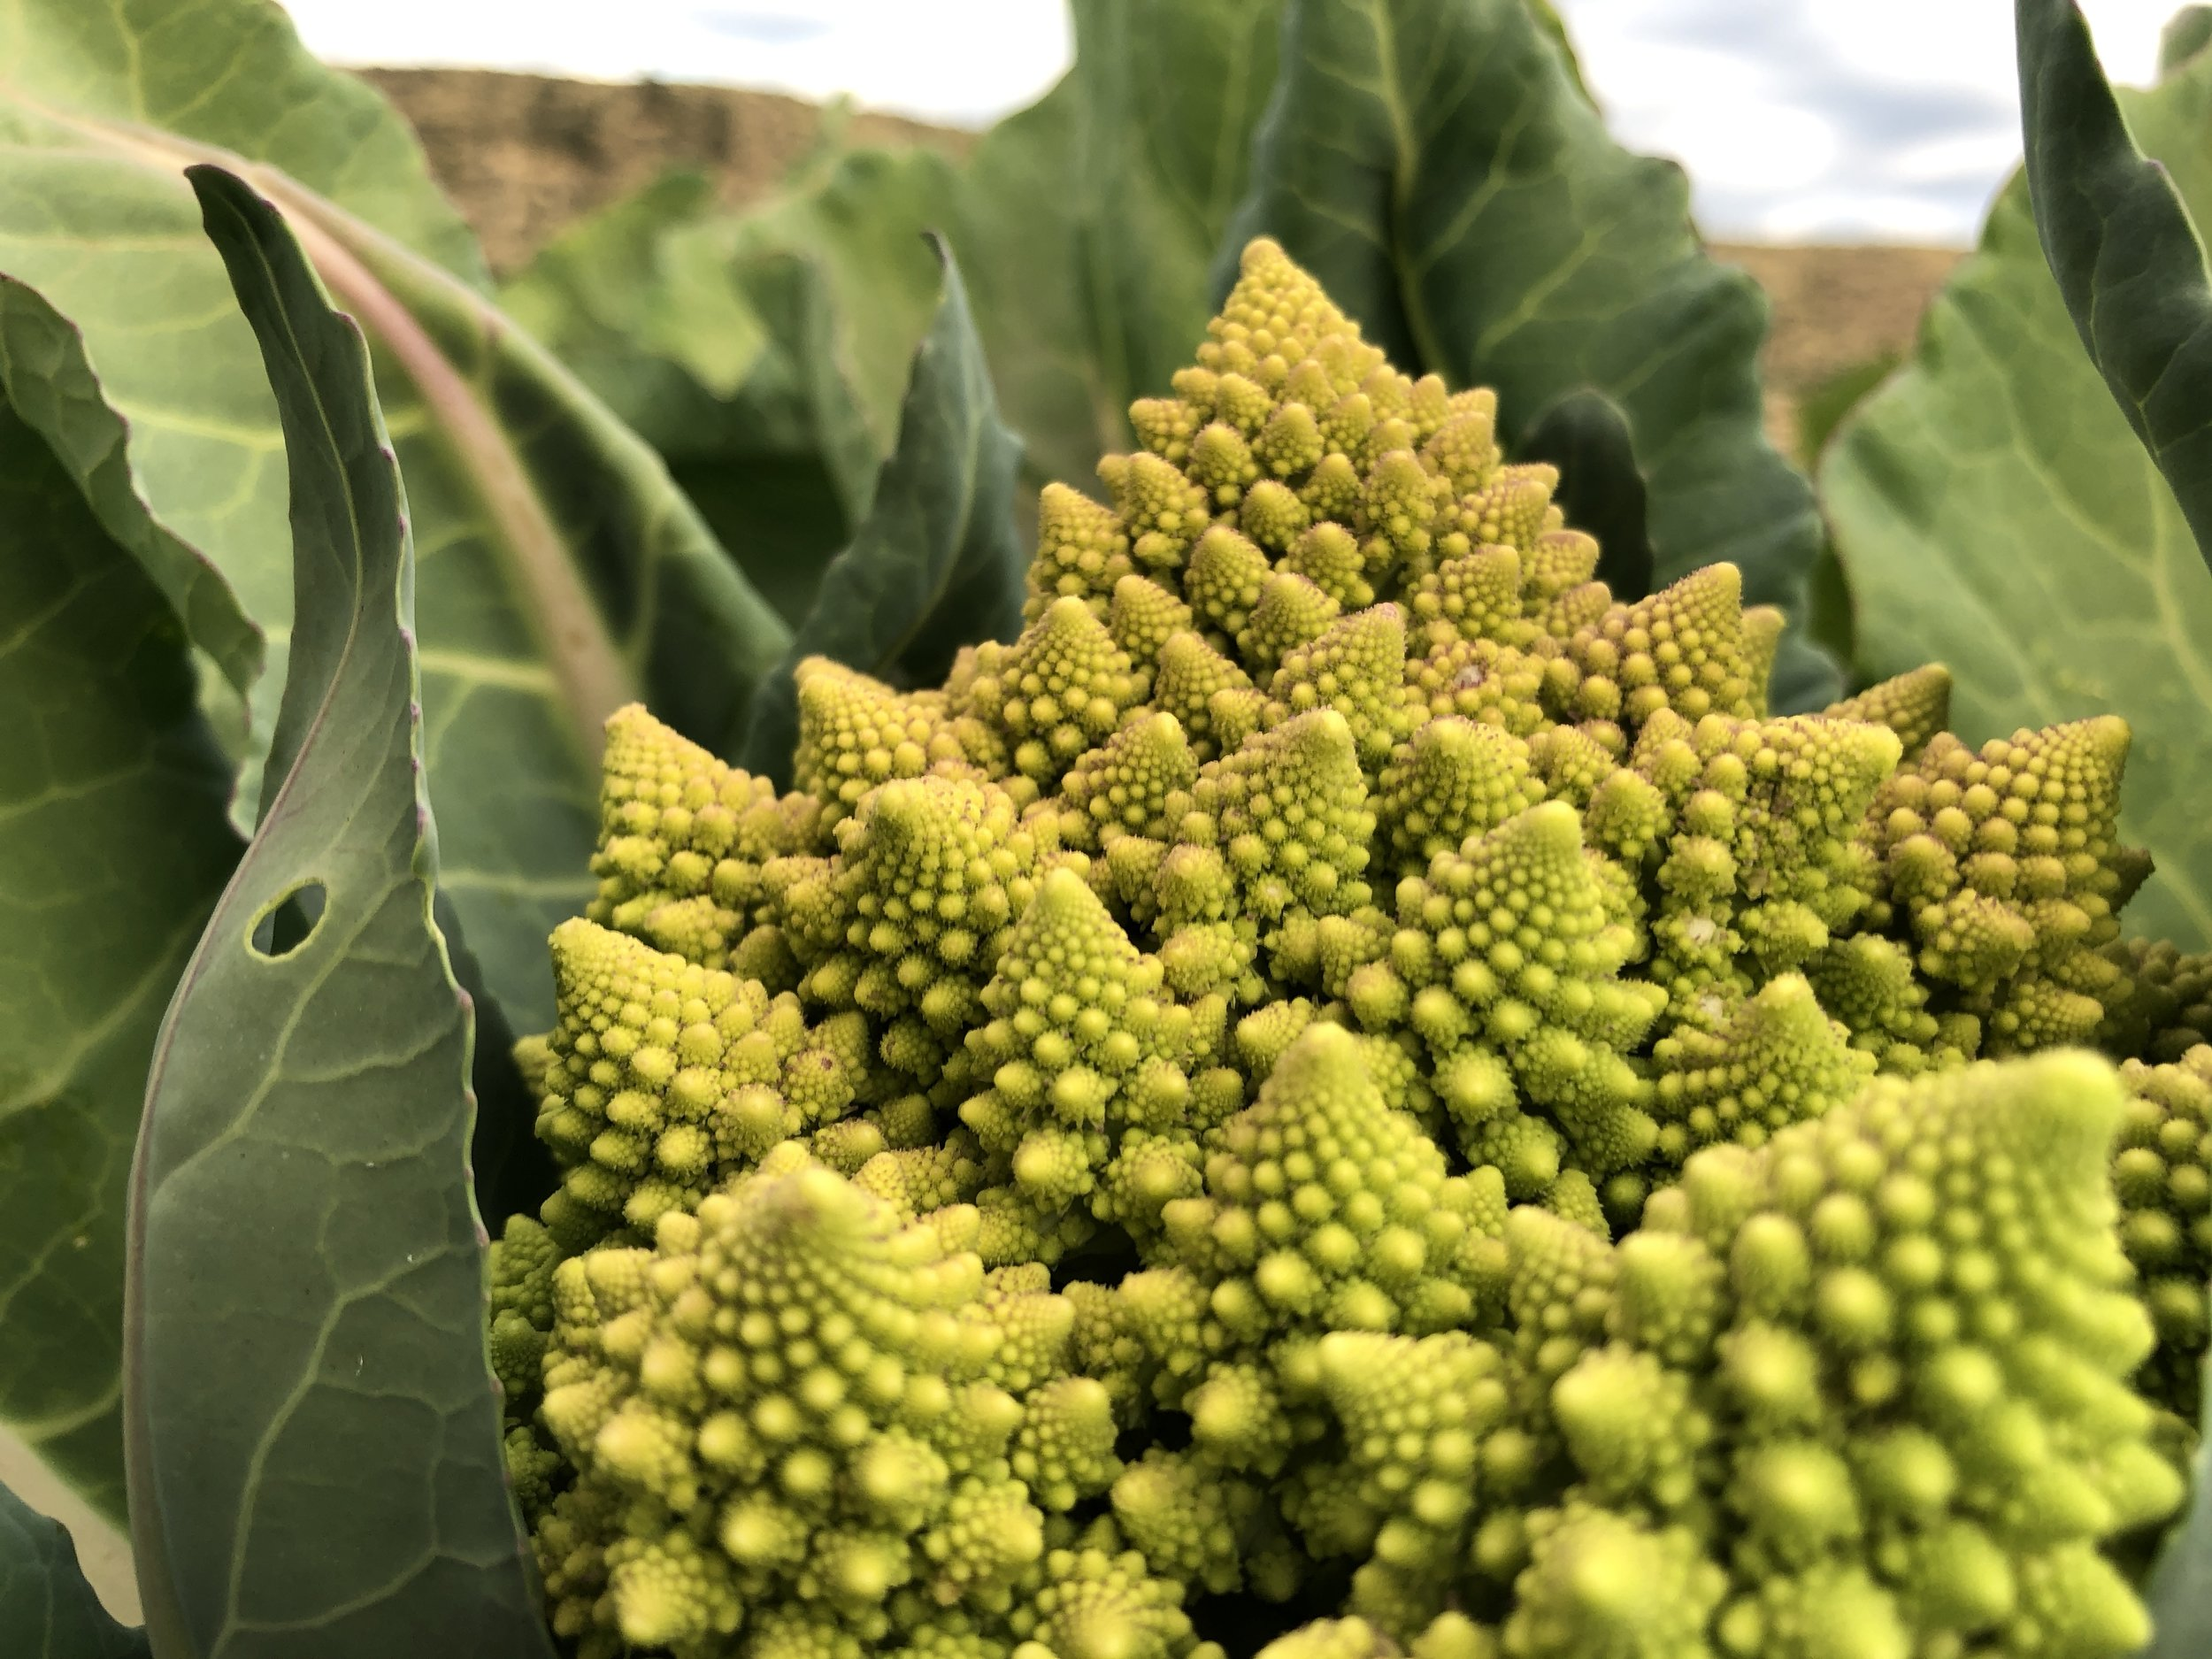 The golden ratio forming repeated, fractal growth in a gorgeous, delicious Romanesco cauliflower.